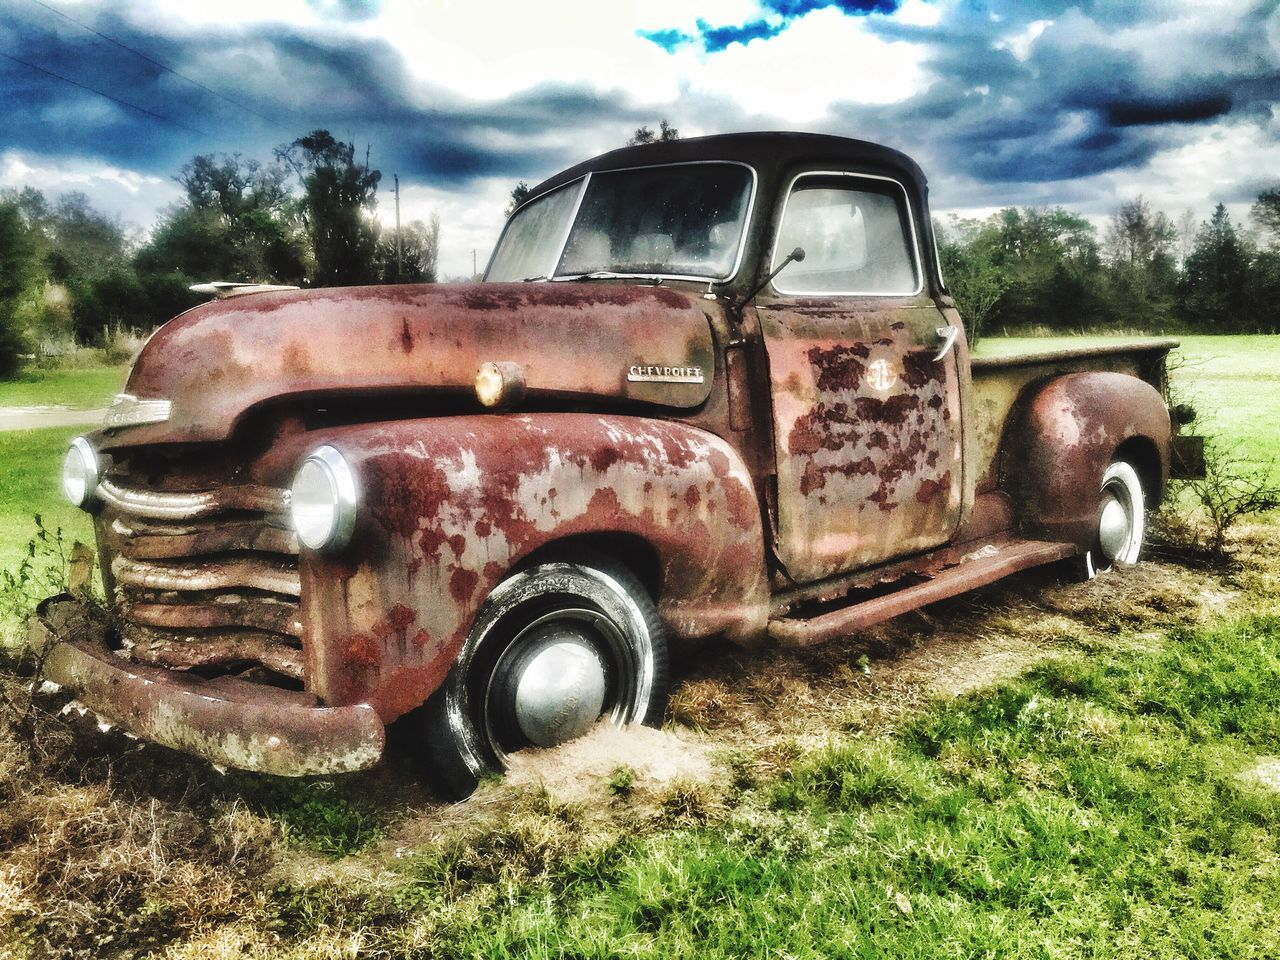 Forgotten Car Cars Vintage Cars Vintage❤ Vintage Vehicles Vintage Auto Automotive Photography Automobile Autos Automotive Old Old Car Old But Awesome Oldie  Antique Car Antique Cars Antiquecars Antiquecar Antique Antiques Rust Rust Never Sleeps Rusty Rusty Autos